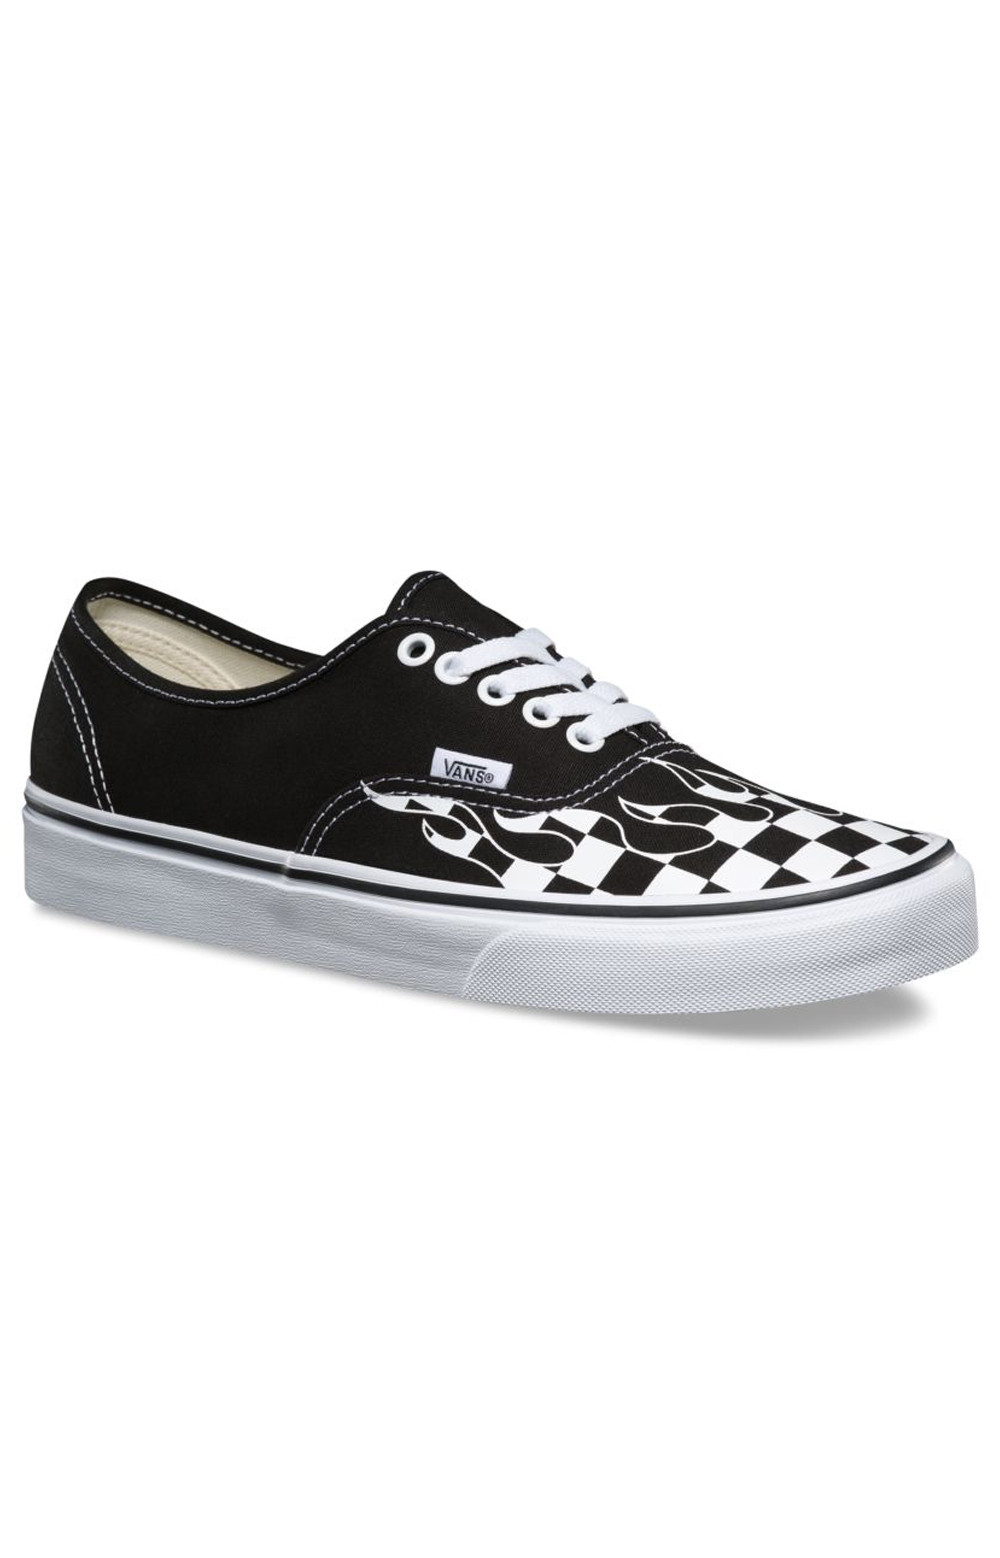 ... Checker Flame Authentic Shoe - Black. Thumbnail 1 Thumbnail 1 Thumbnail  1 ... 1bc1a3b22